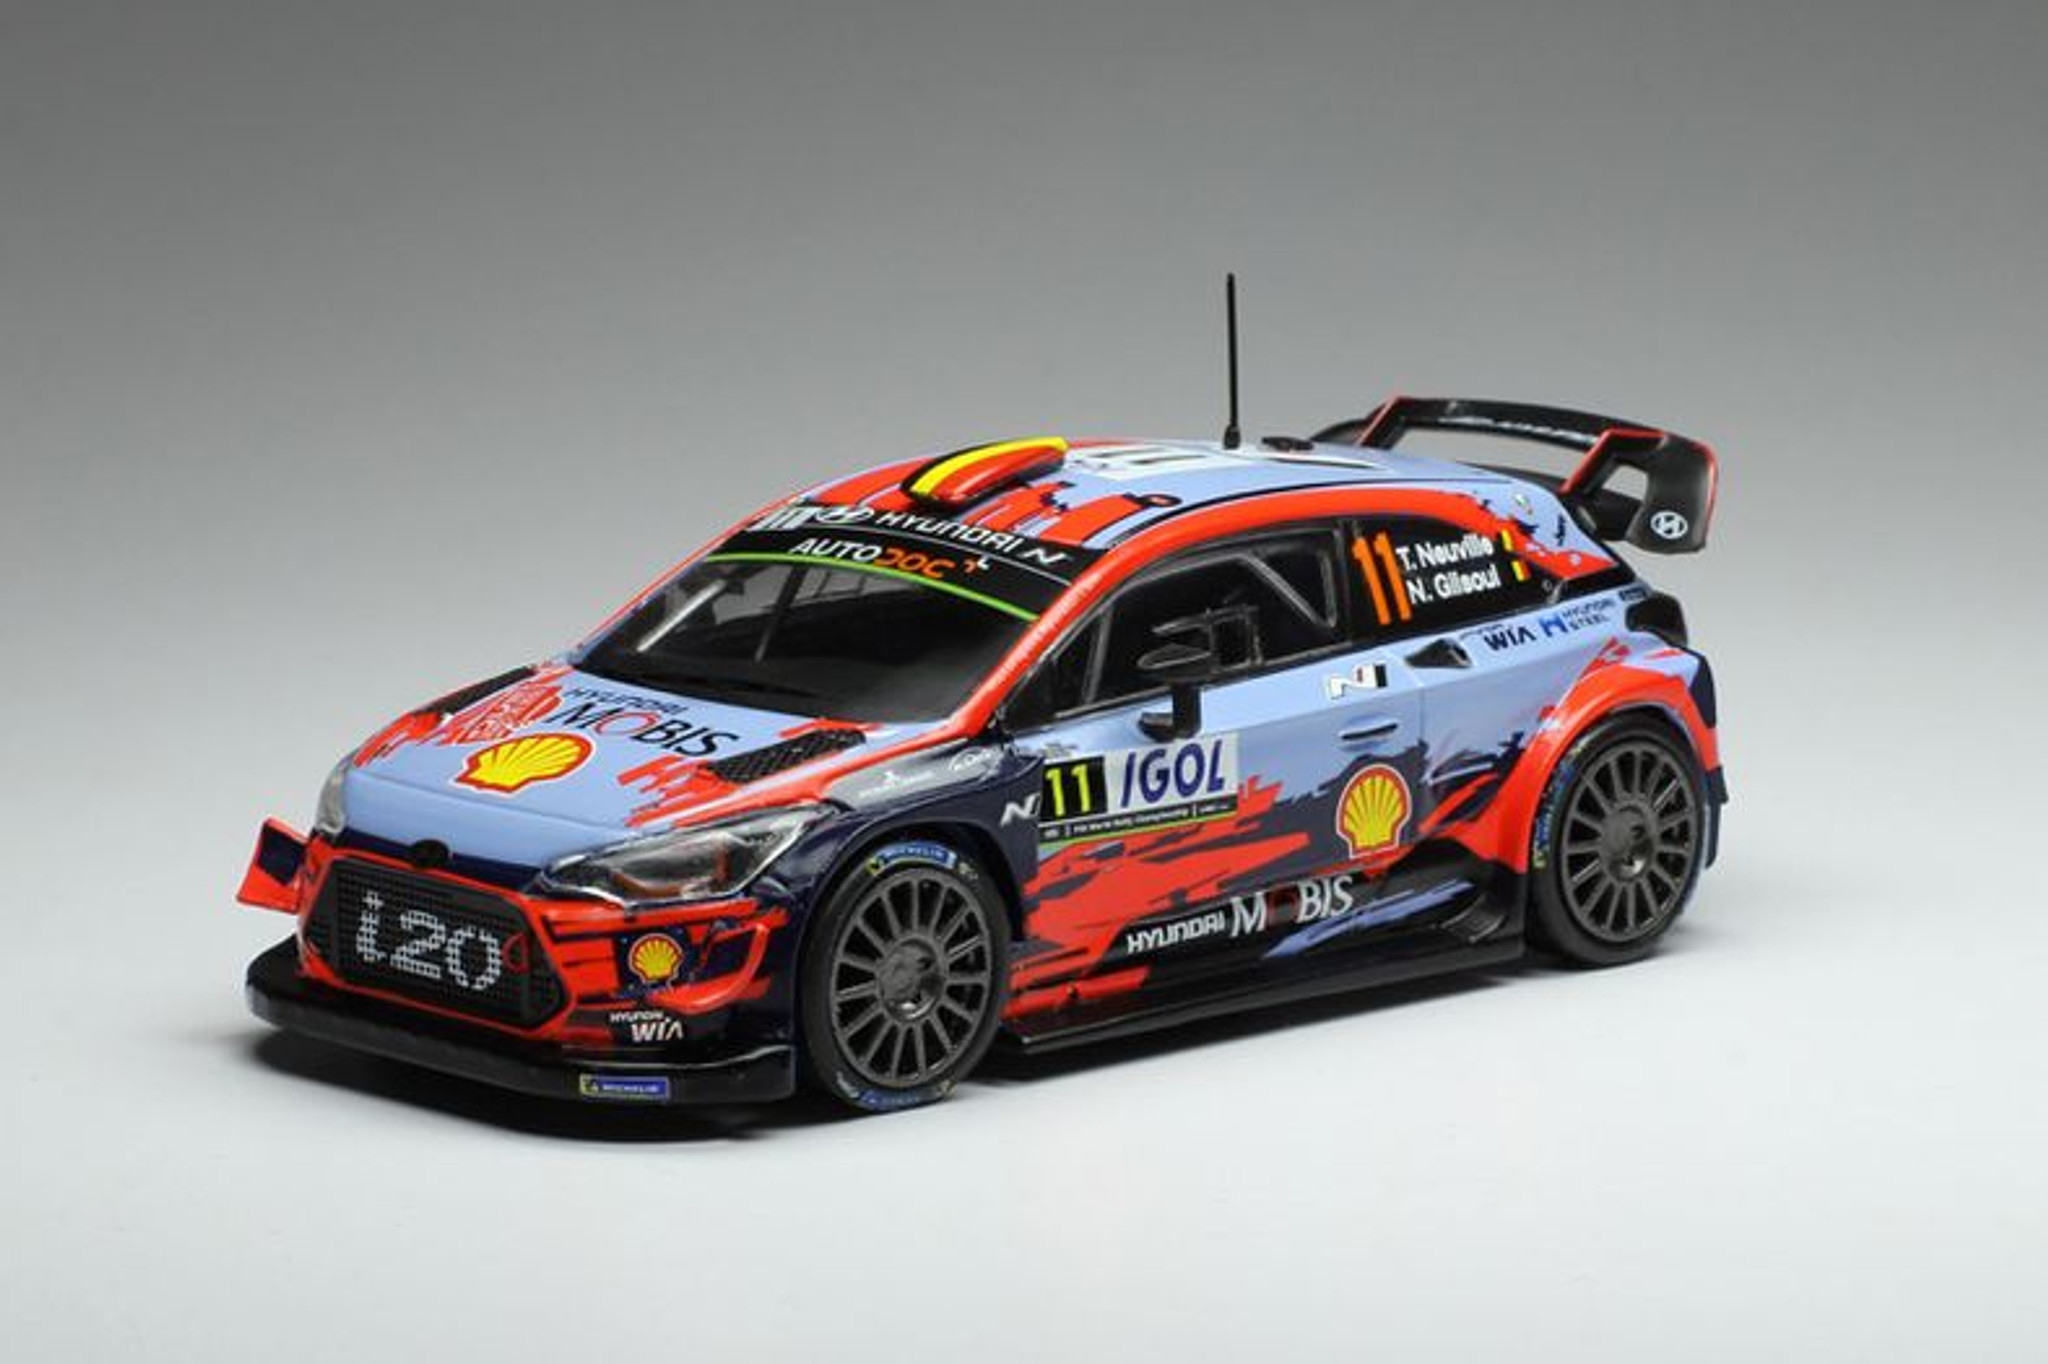 Hyundai Wrc 11 Hyundai I20 Coupe Wrc Hierry Neuville And Nicolas Gilsoul Part No Hy1ova184001